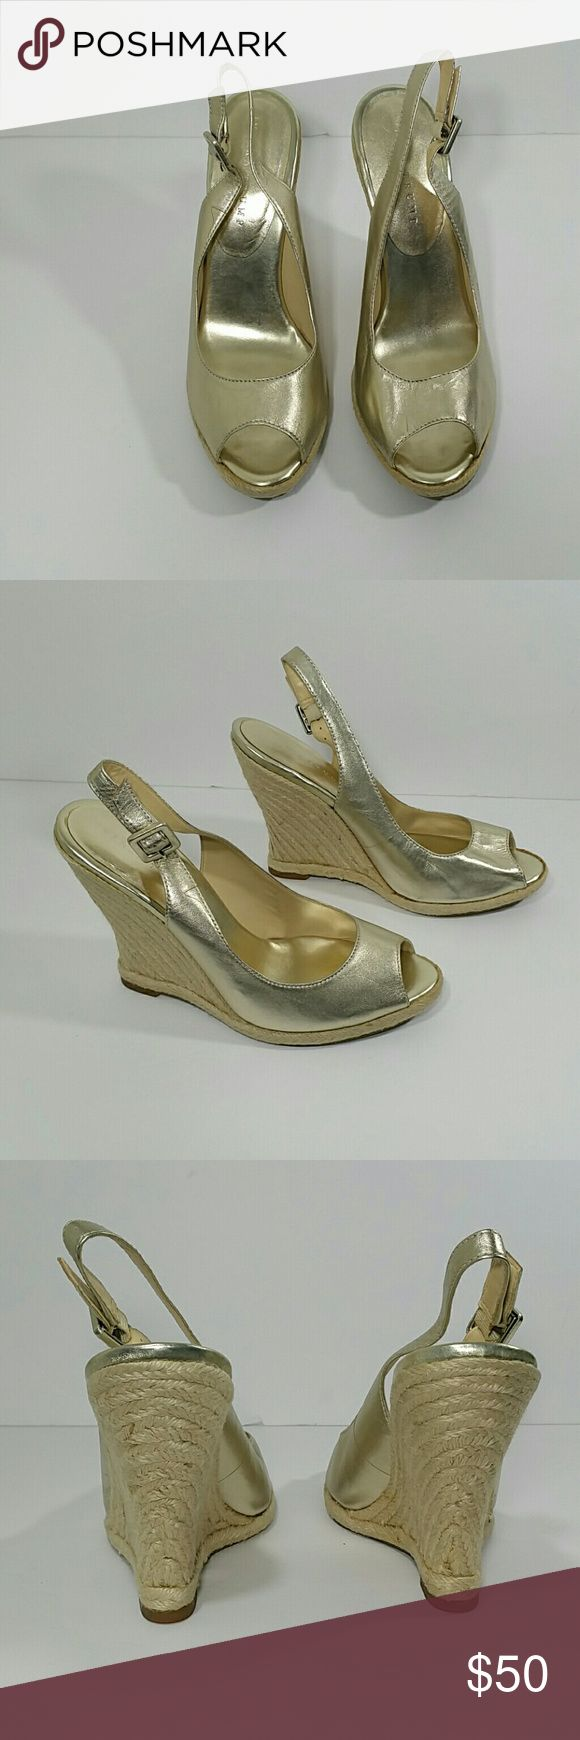 Ivank Trump Gold Espadrille Wedge Sandals Very cute gold espadrille wedge sandals in excellent condition, worn a few times Ivanka Trump Shoes Espadrilles